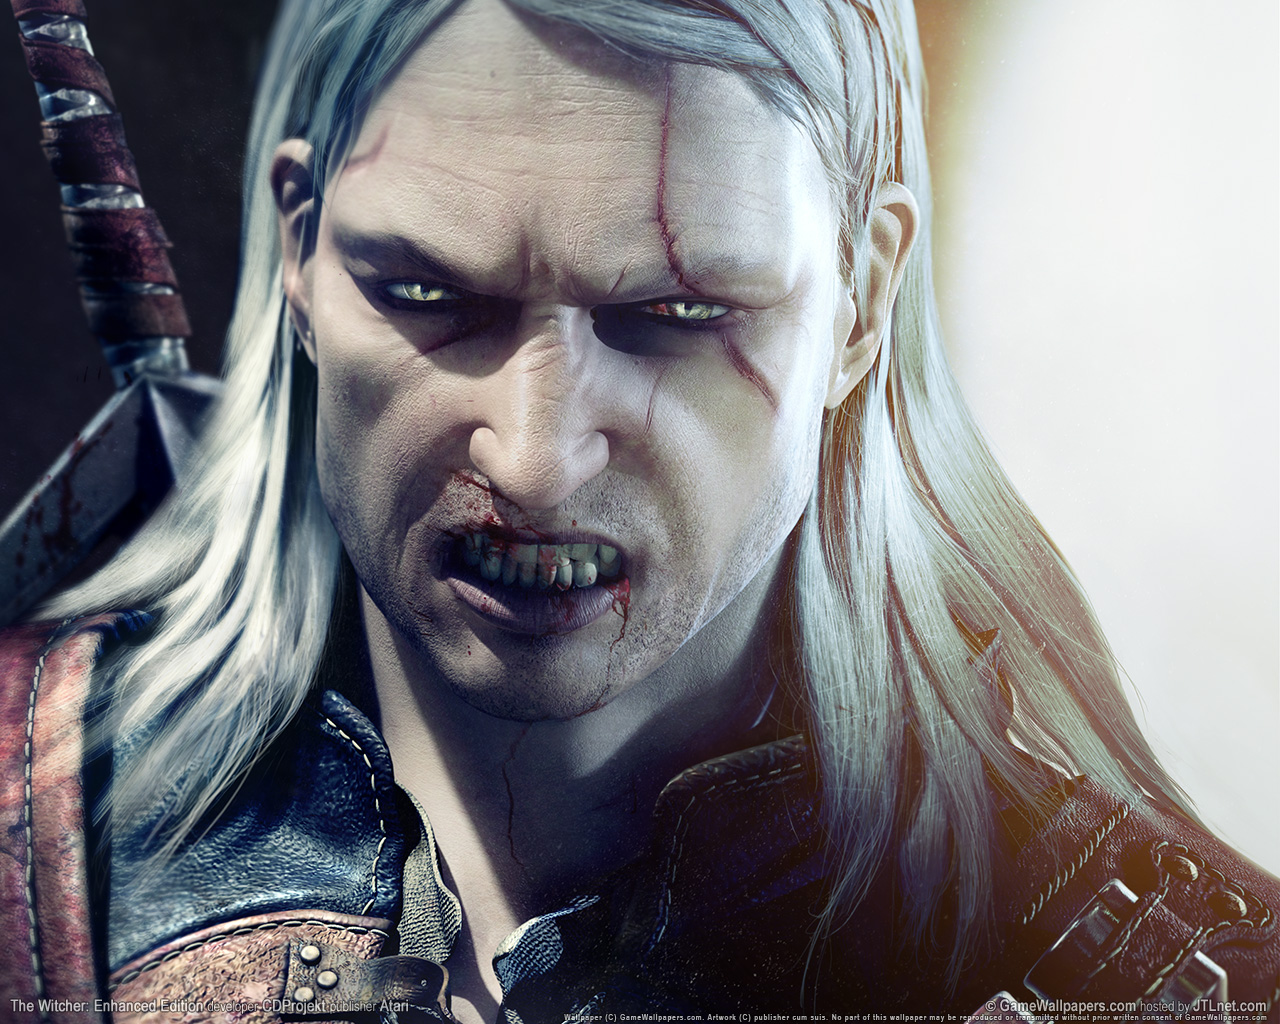 http://images5.fanpop.com/image/photos/29300000/Geralt-the-witcher-29331479-1280-1024.jpg